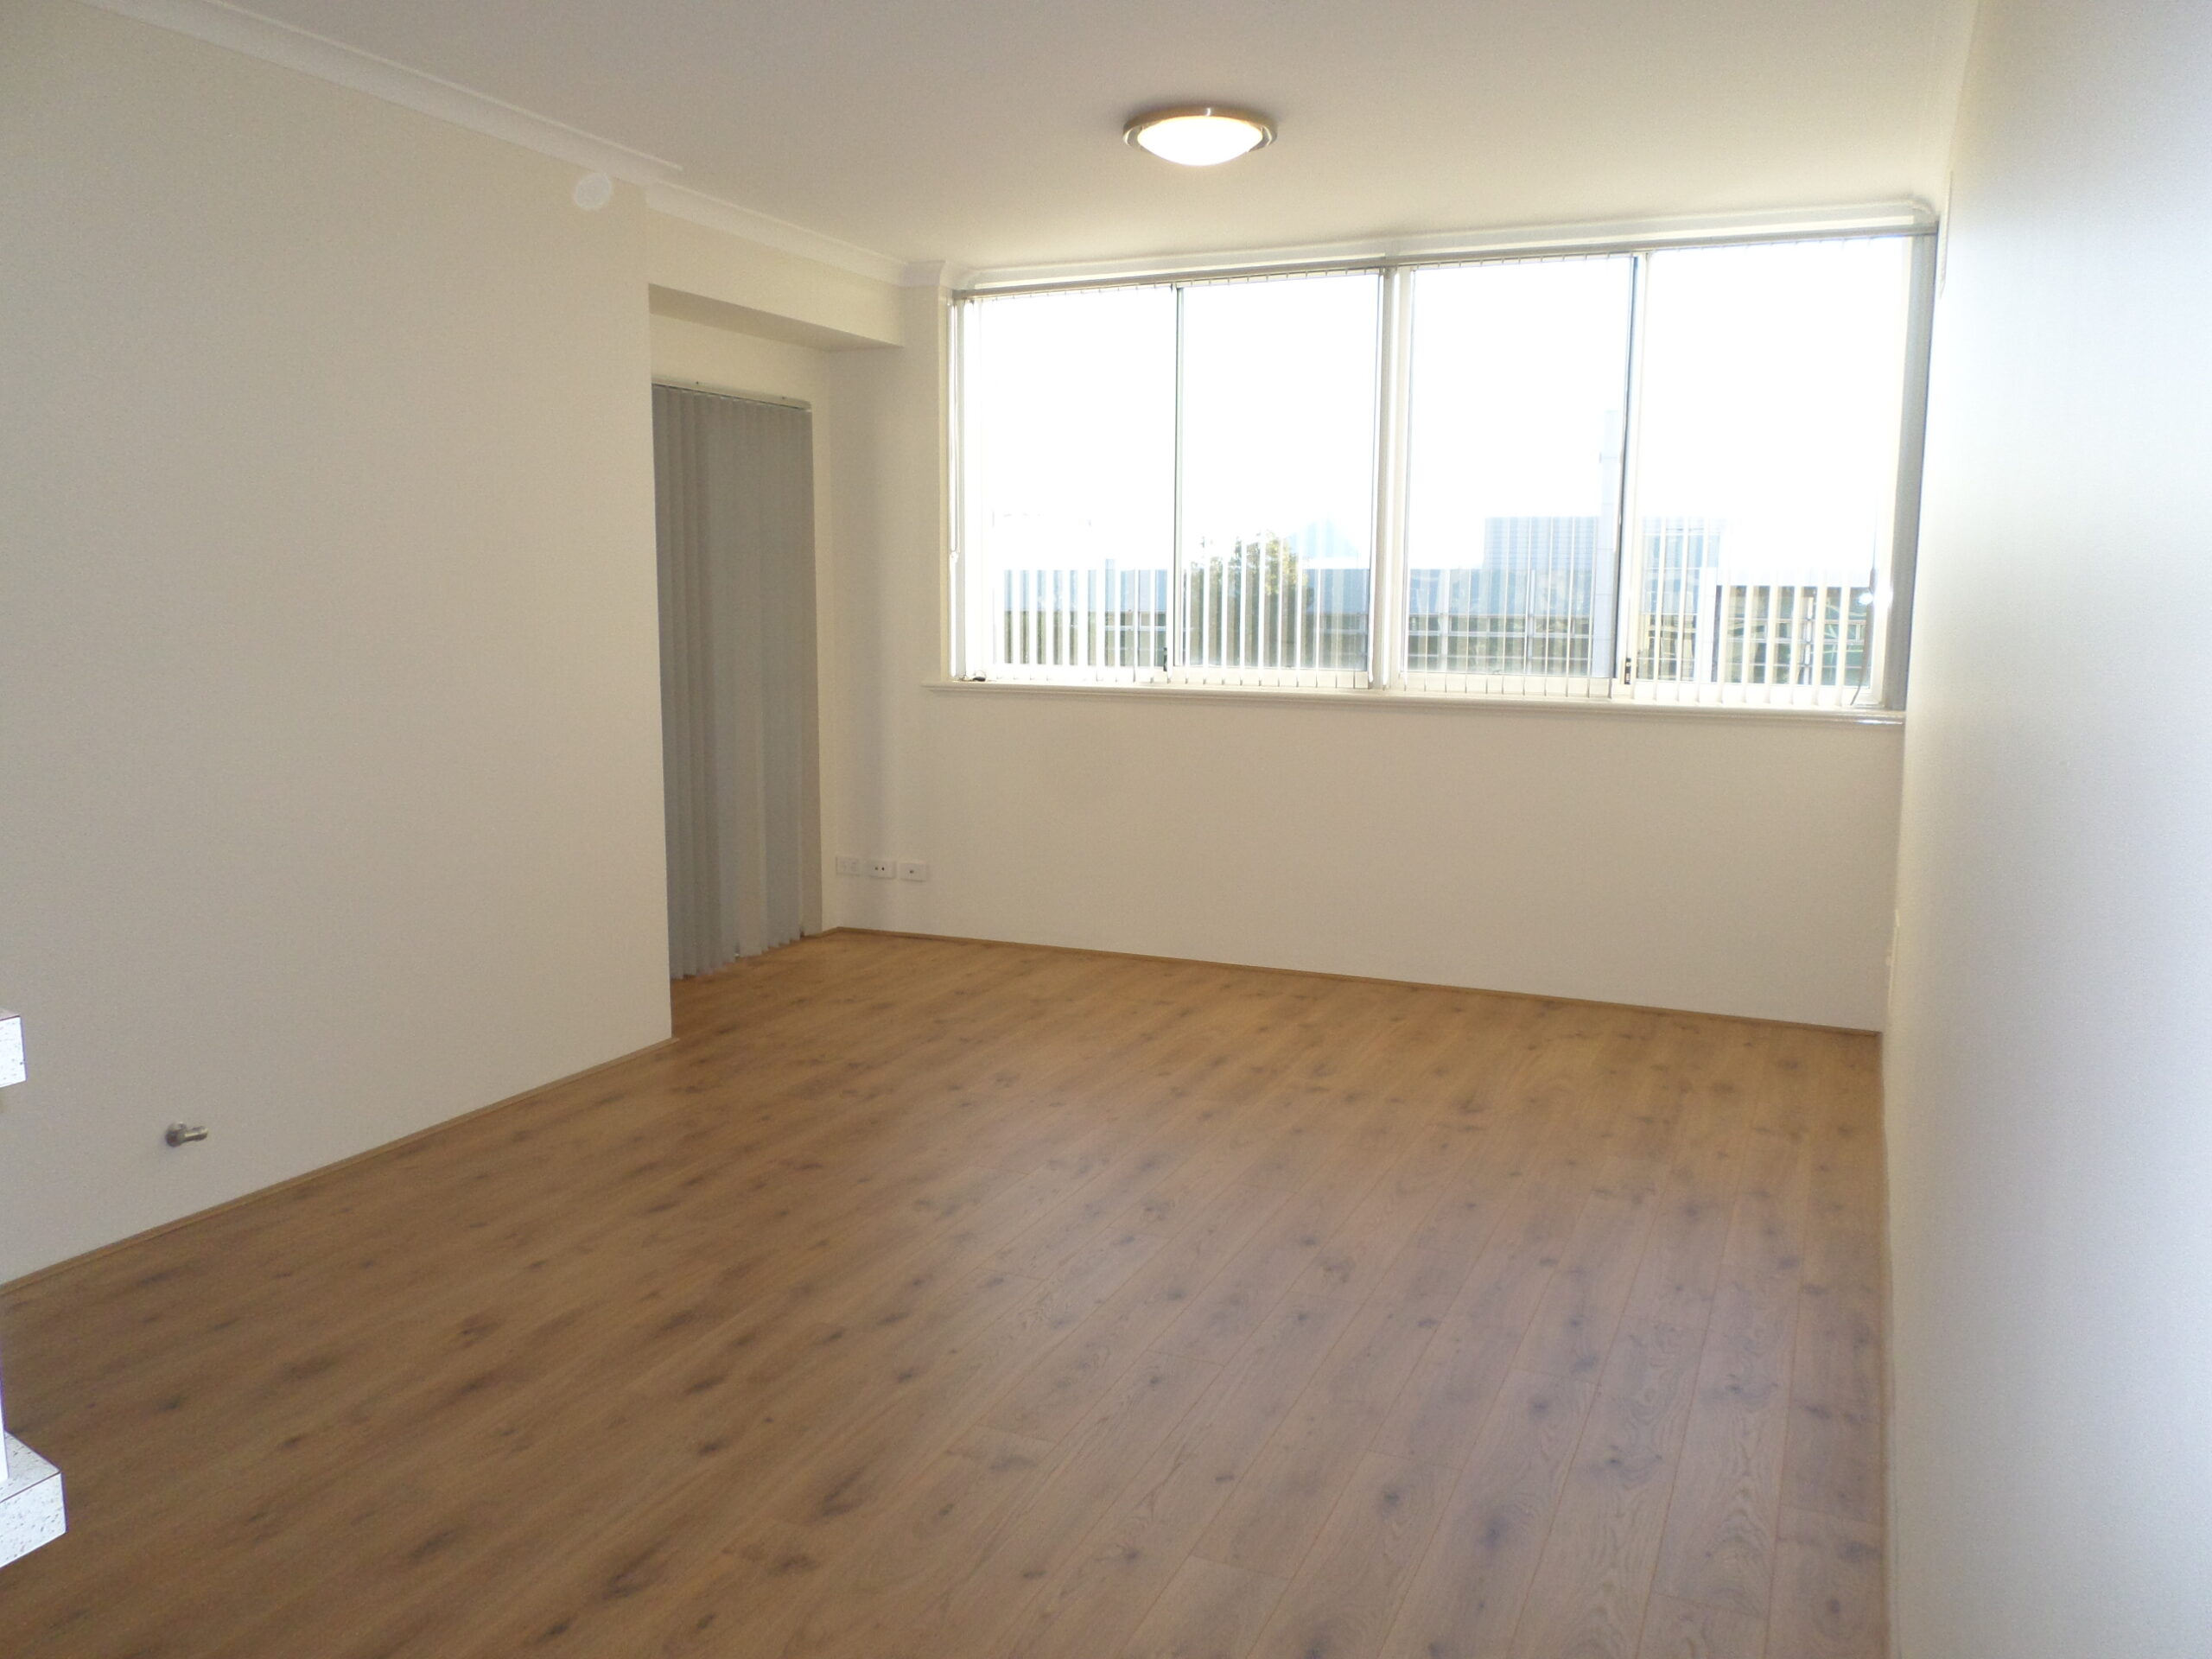 CENTRAL APARTMENT AVAILABLE!